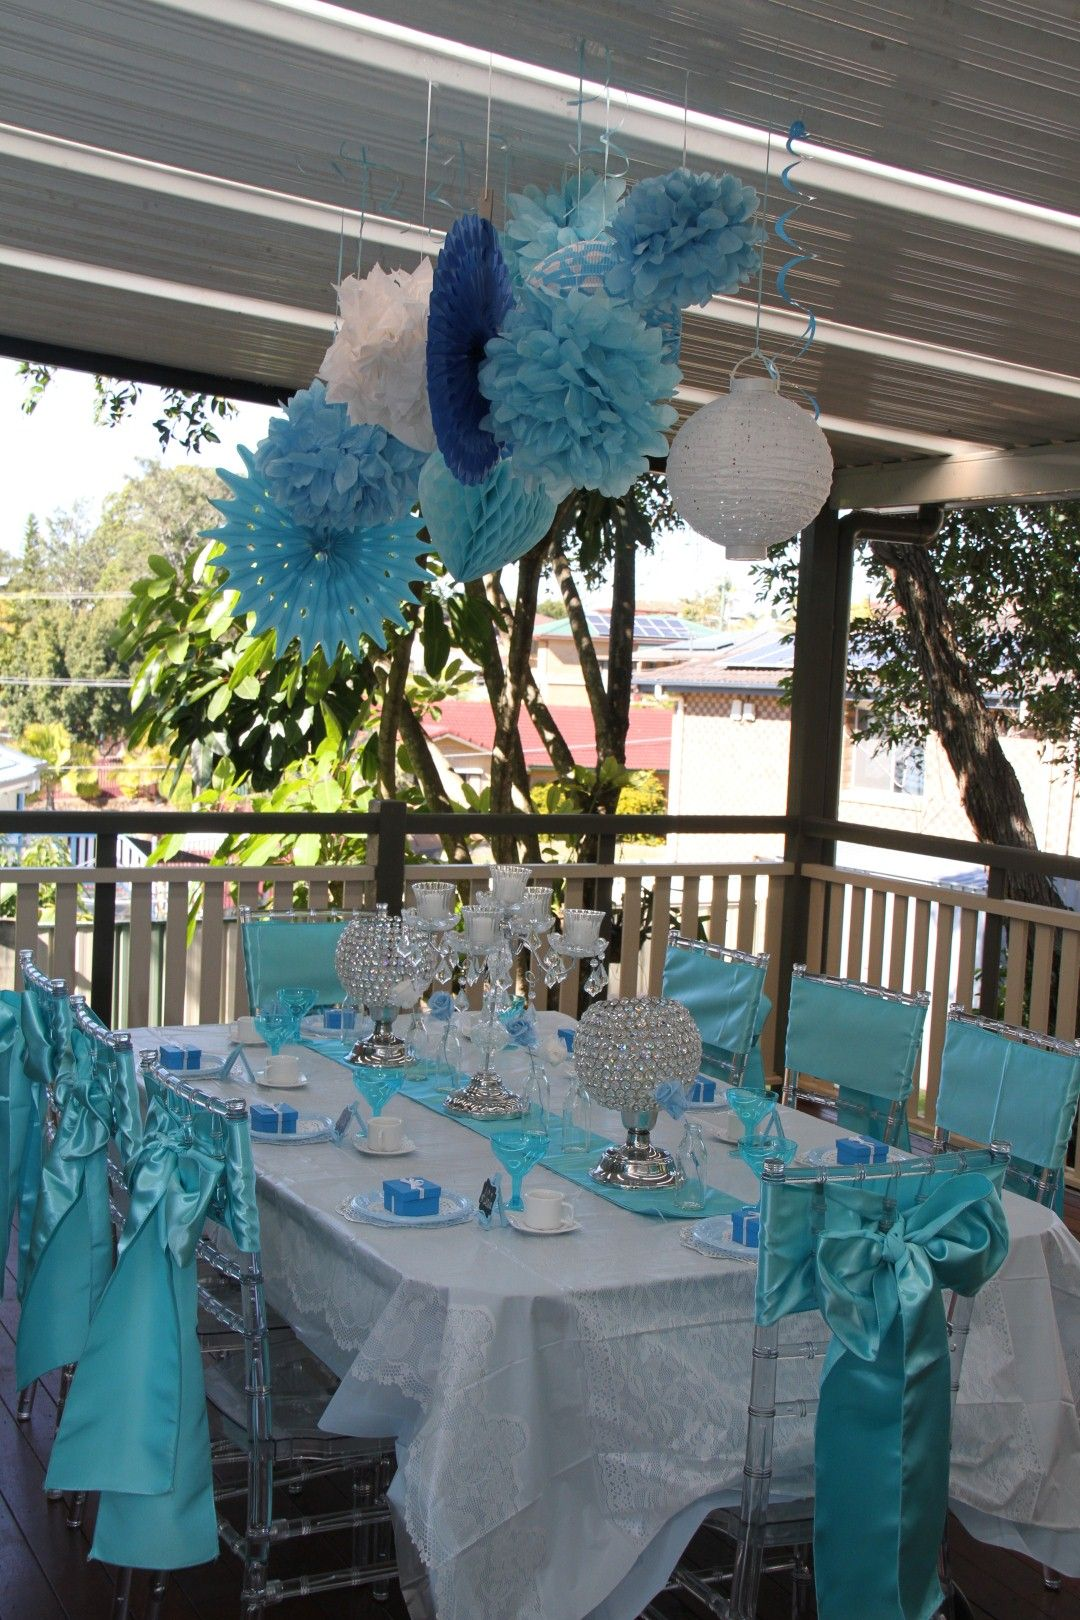 Vintage High Tea Tiffany Blue Table setting Decorations   Party ...